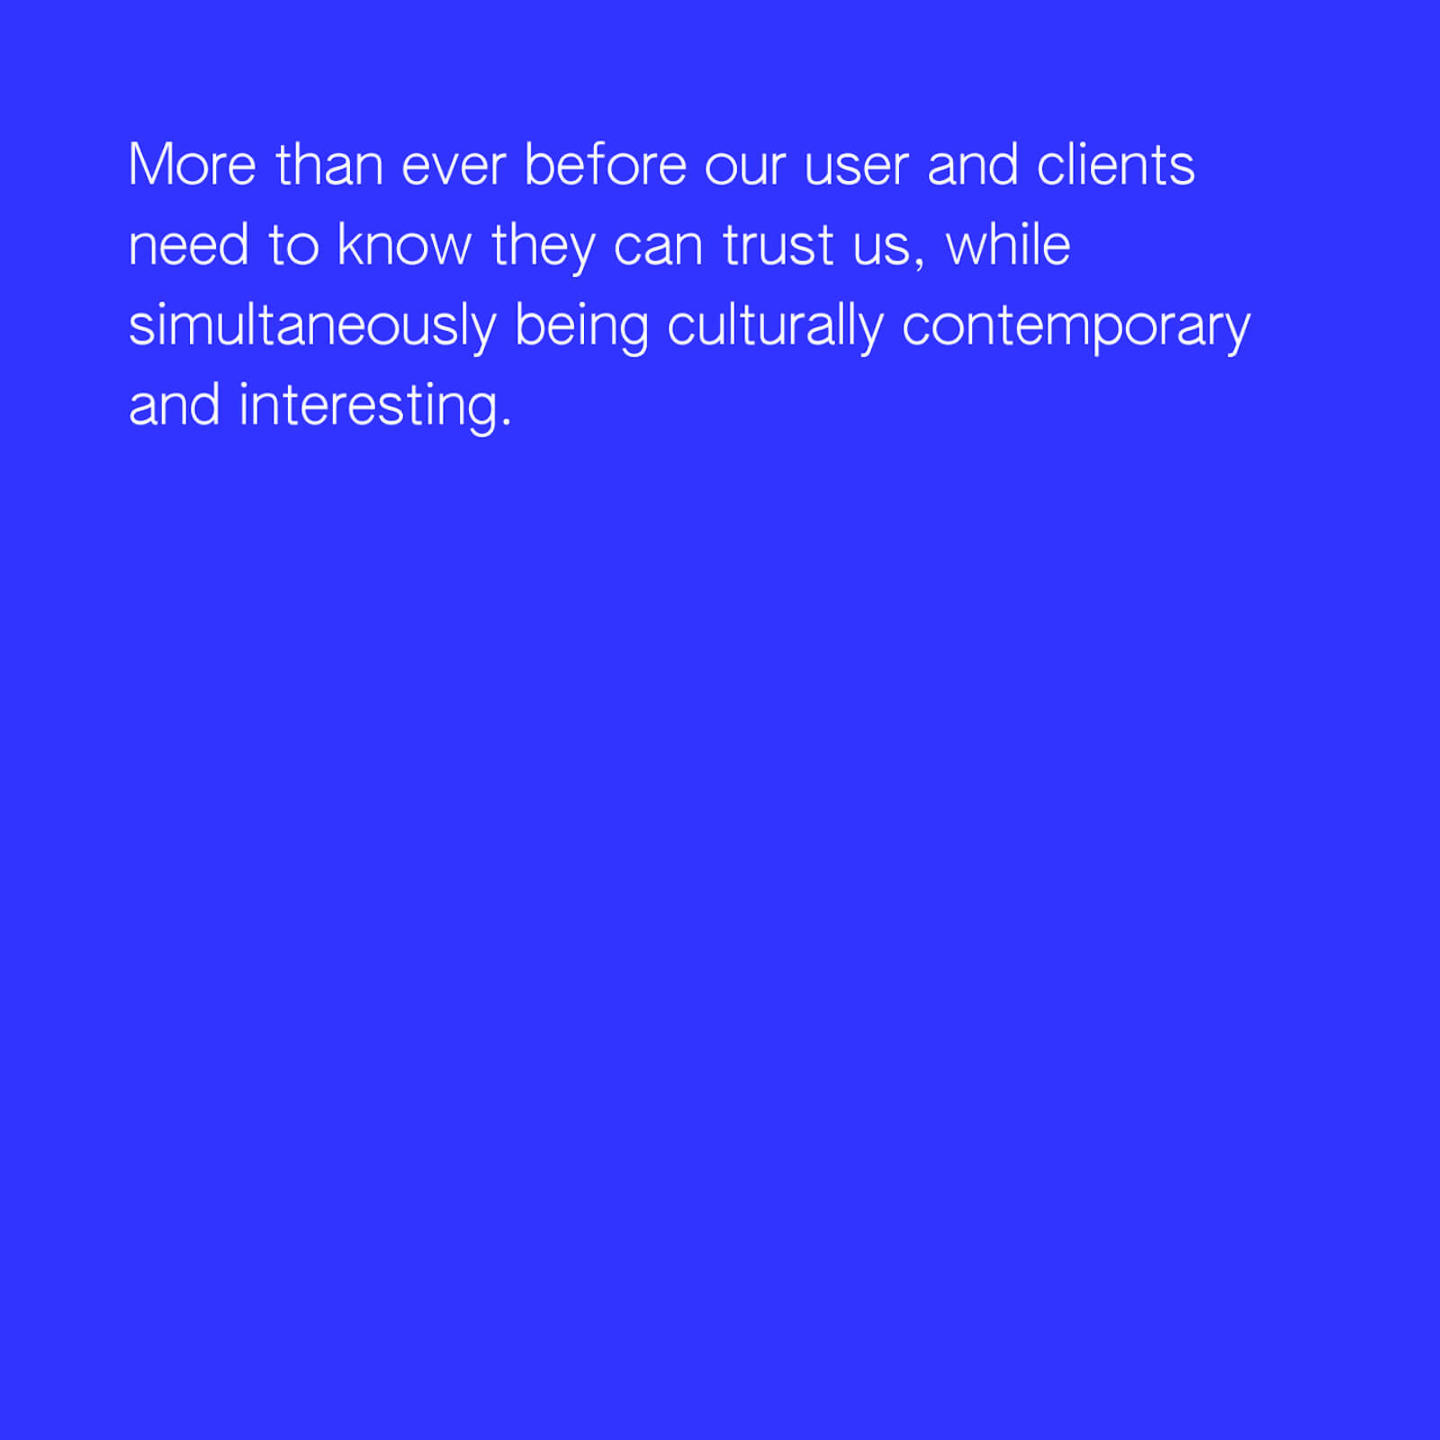 More than ever before our user and clients need to know they can trust us, while simultaneously being culturally contemporary and interesting.